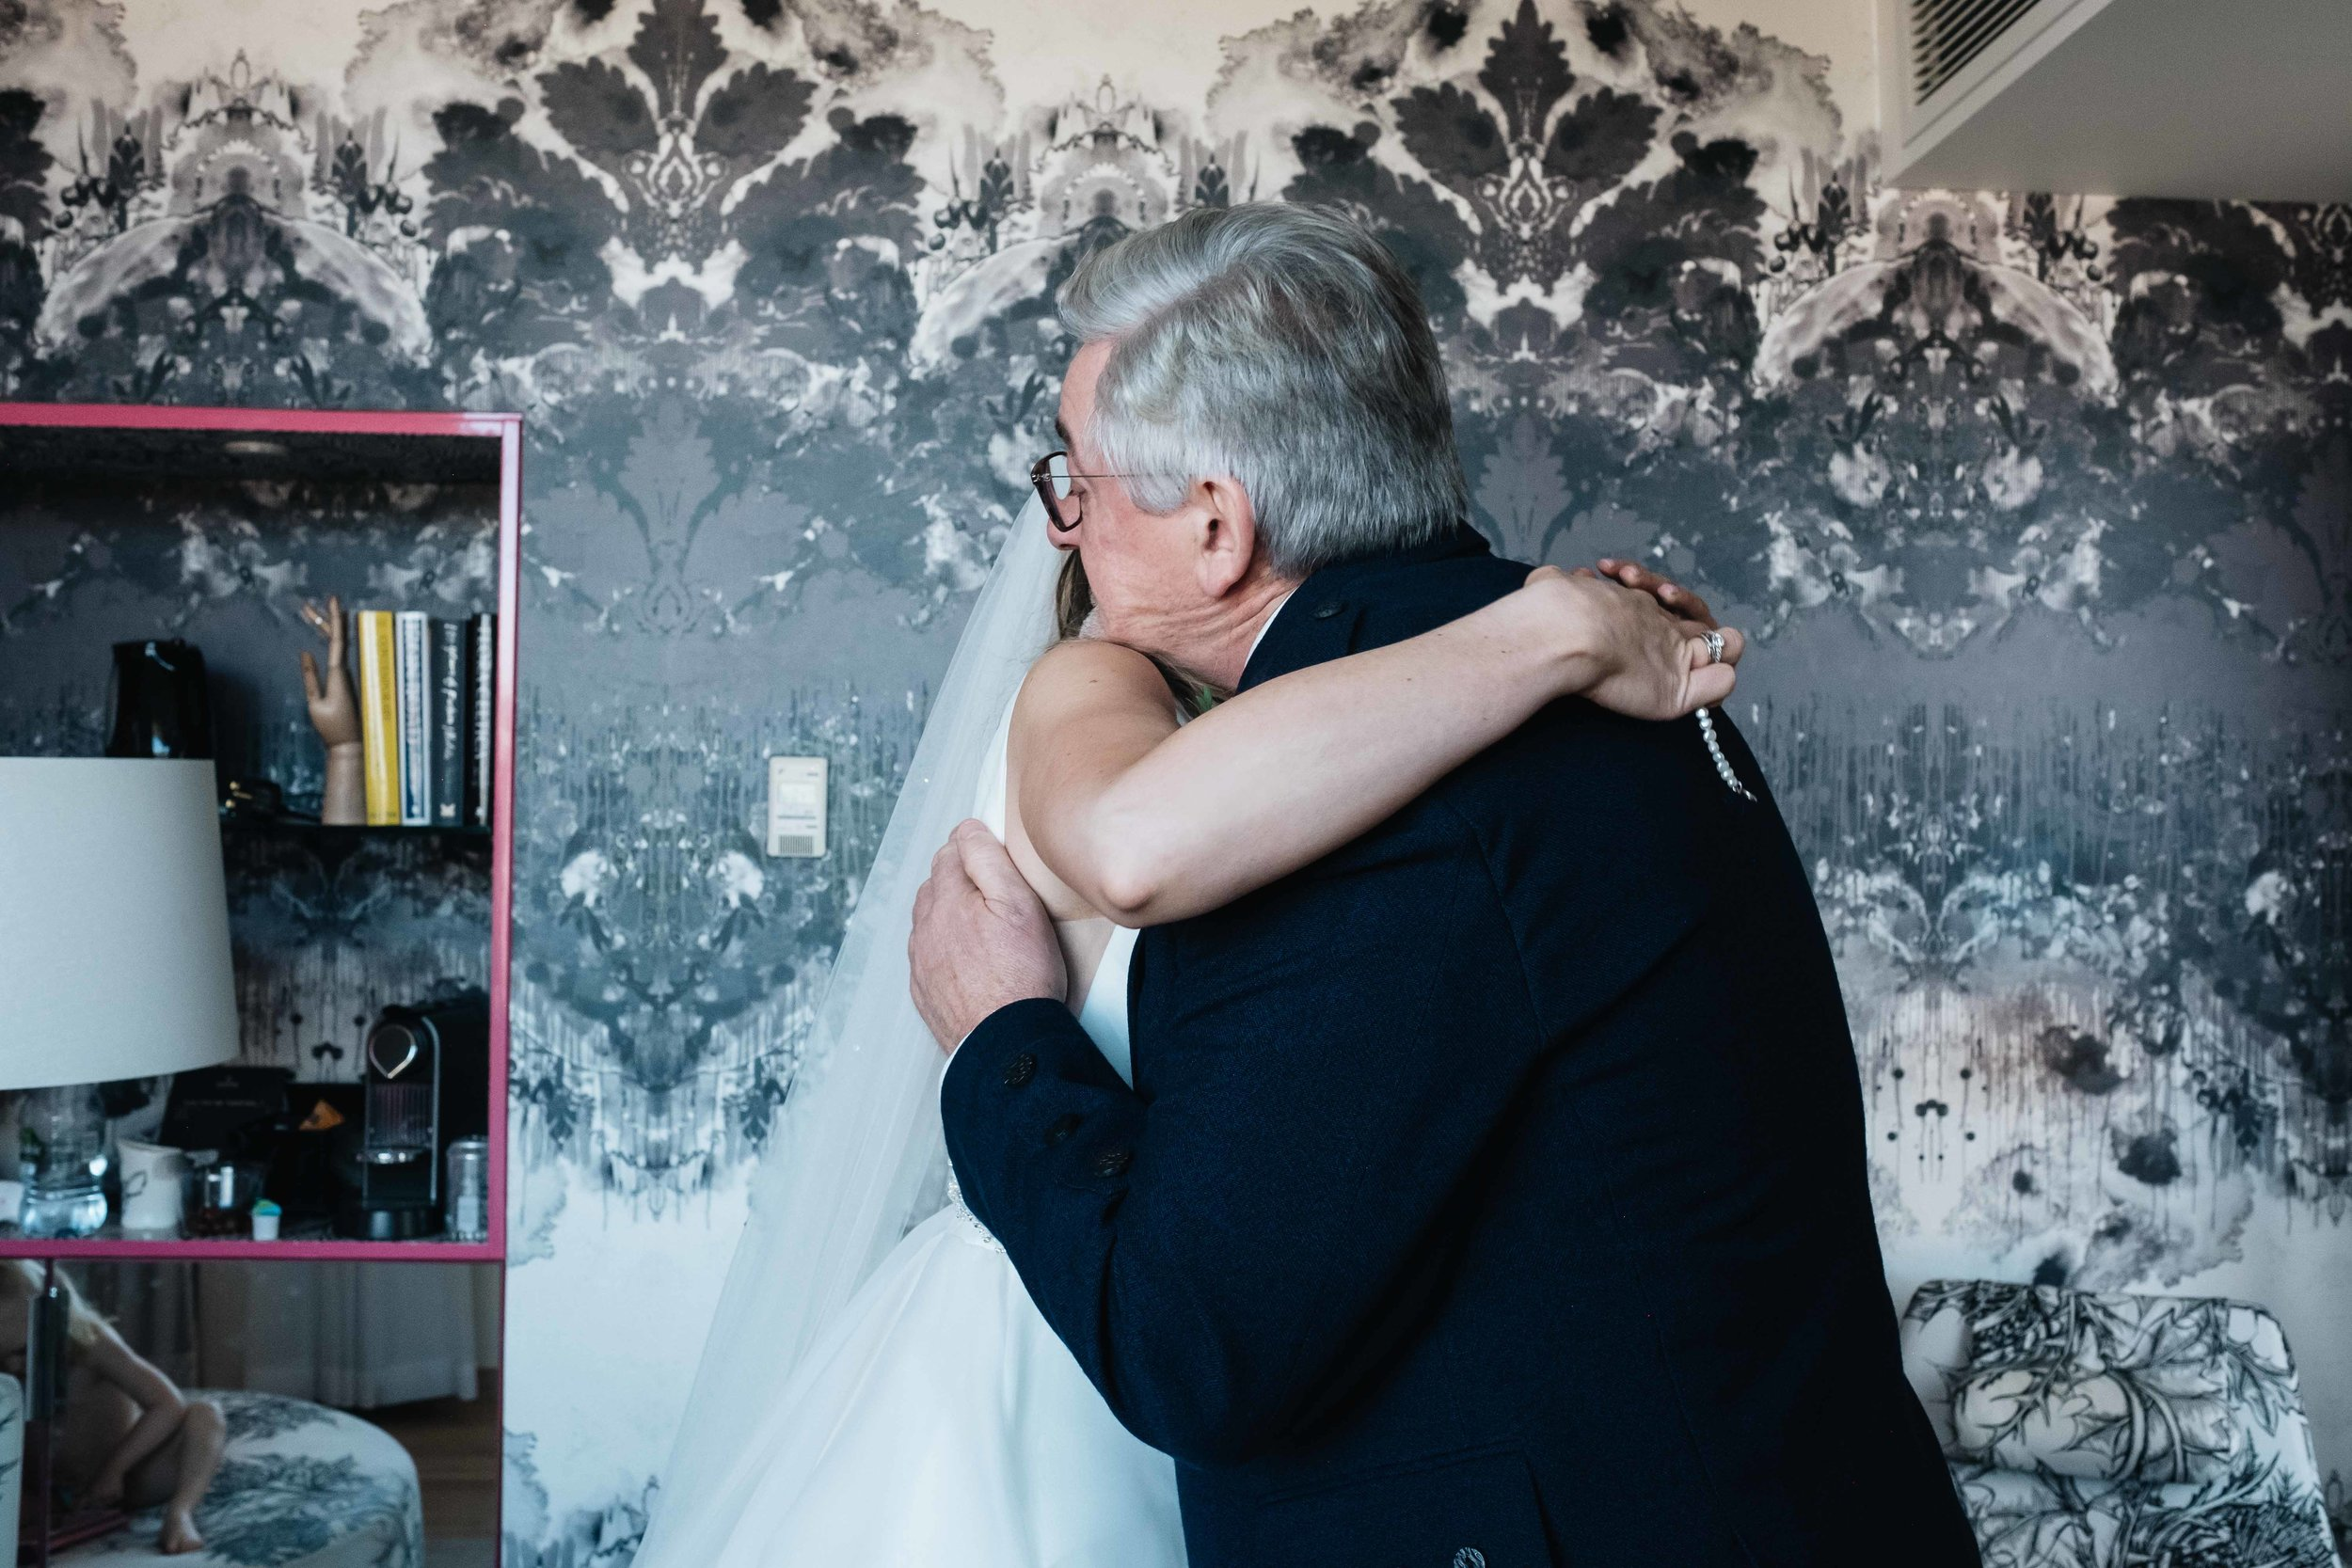 father embraces his daughter on her wedding day